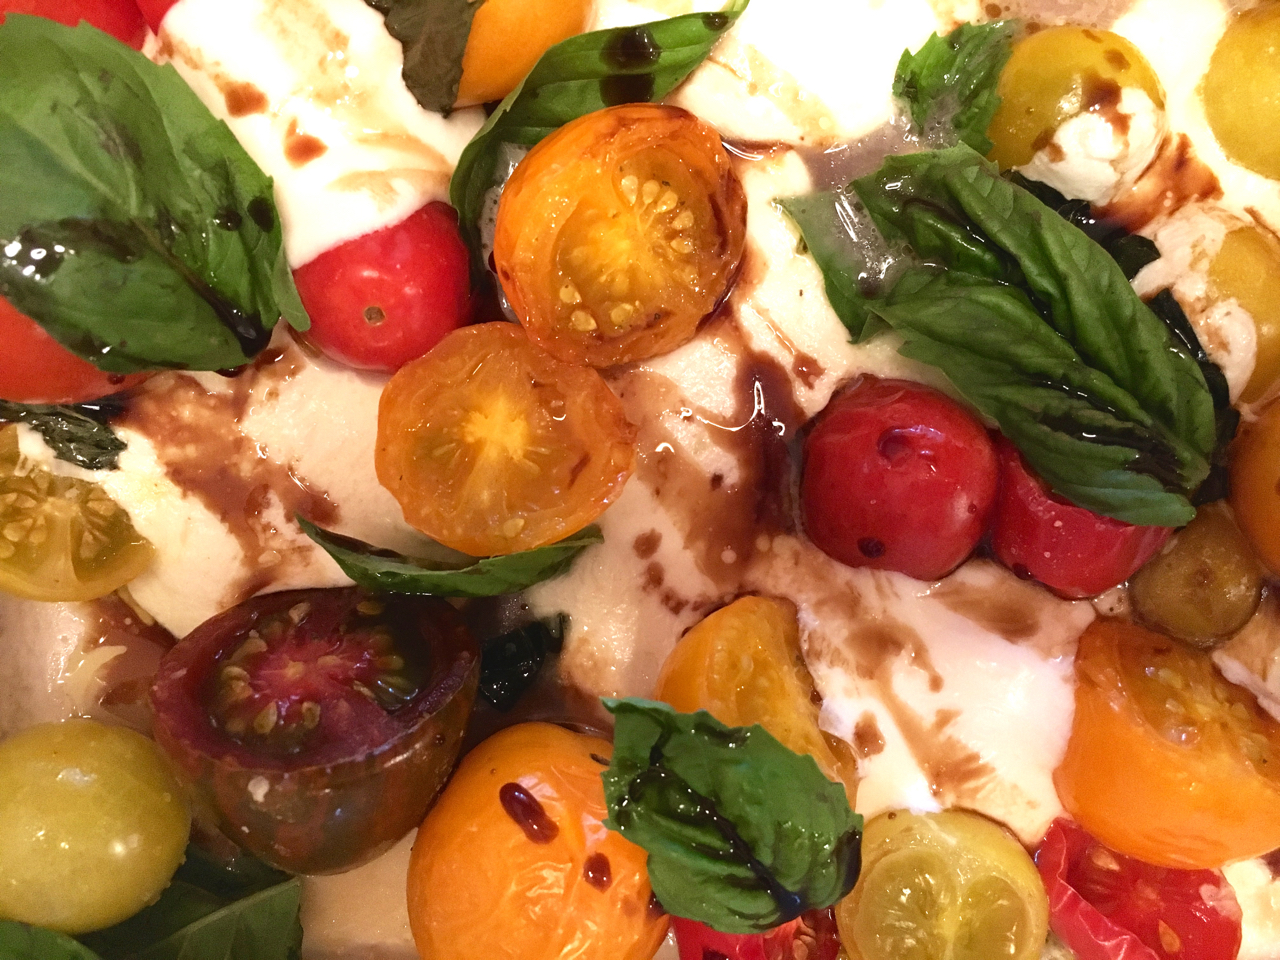 Roasted Heirloom Tomato Basil Mozzarella Caprese Salad